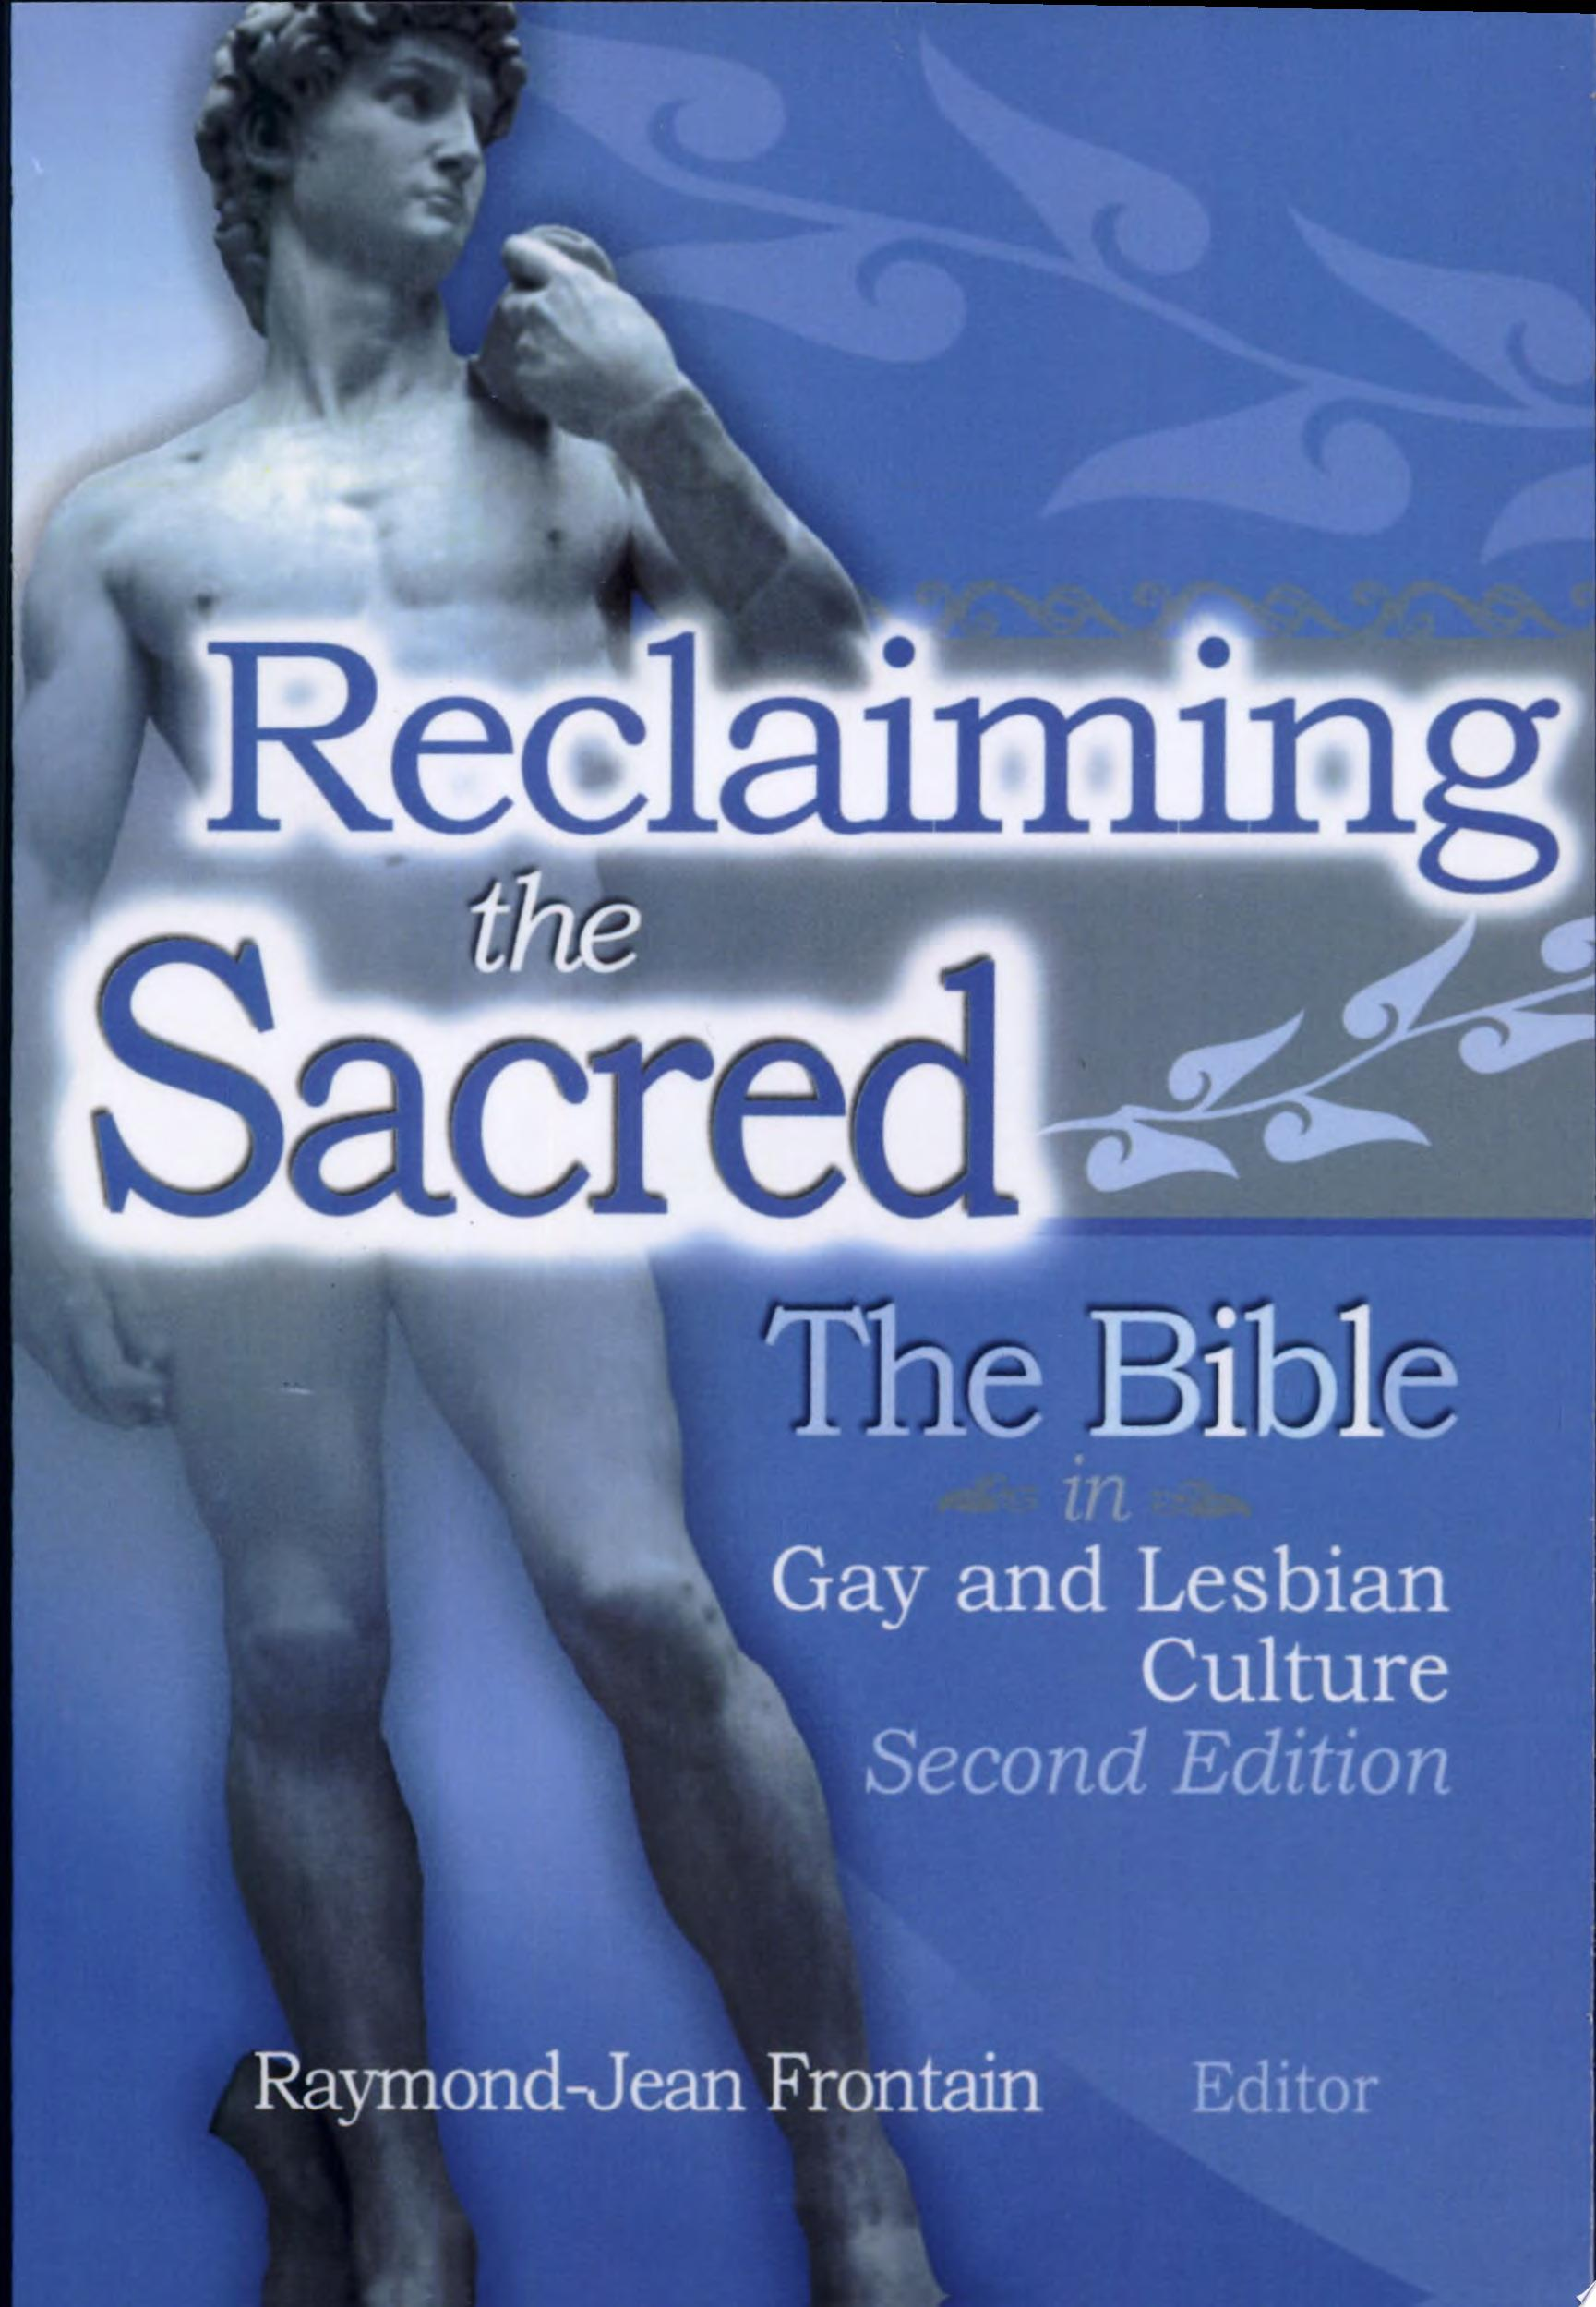 Reclaiming the Sacred